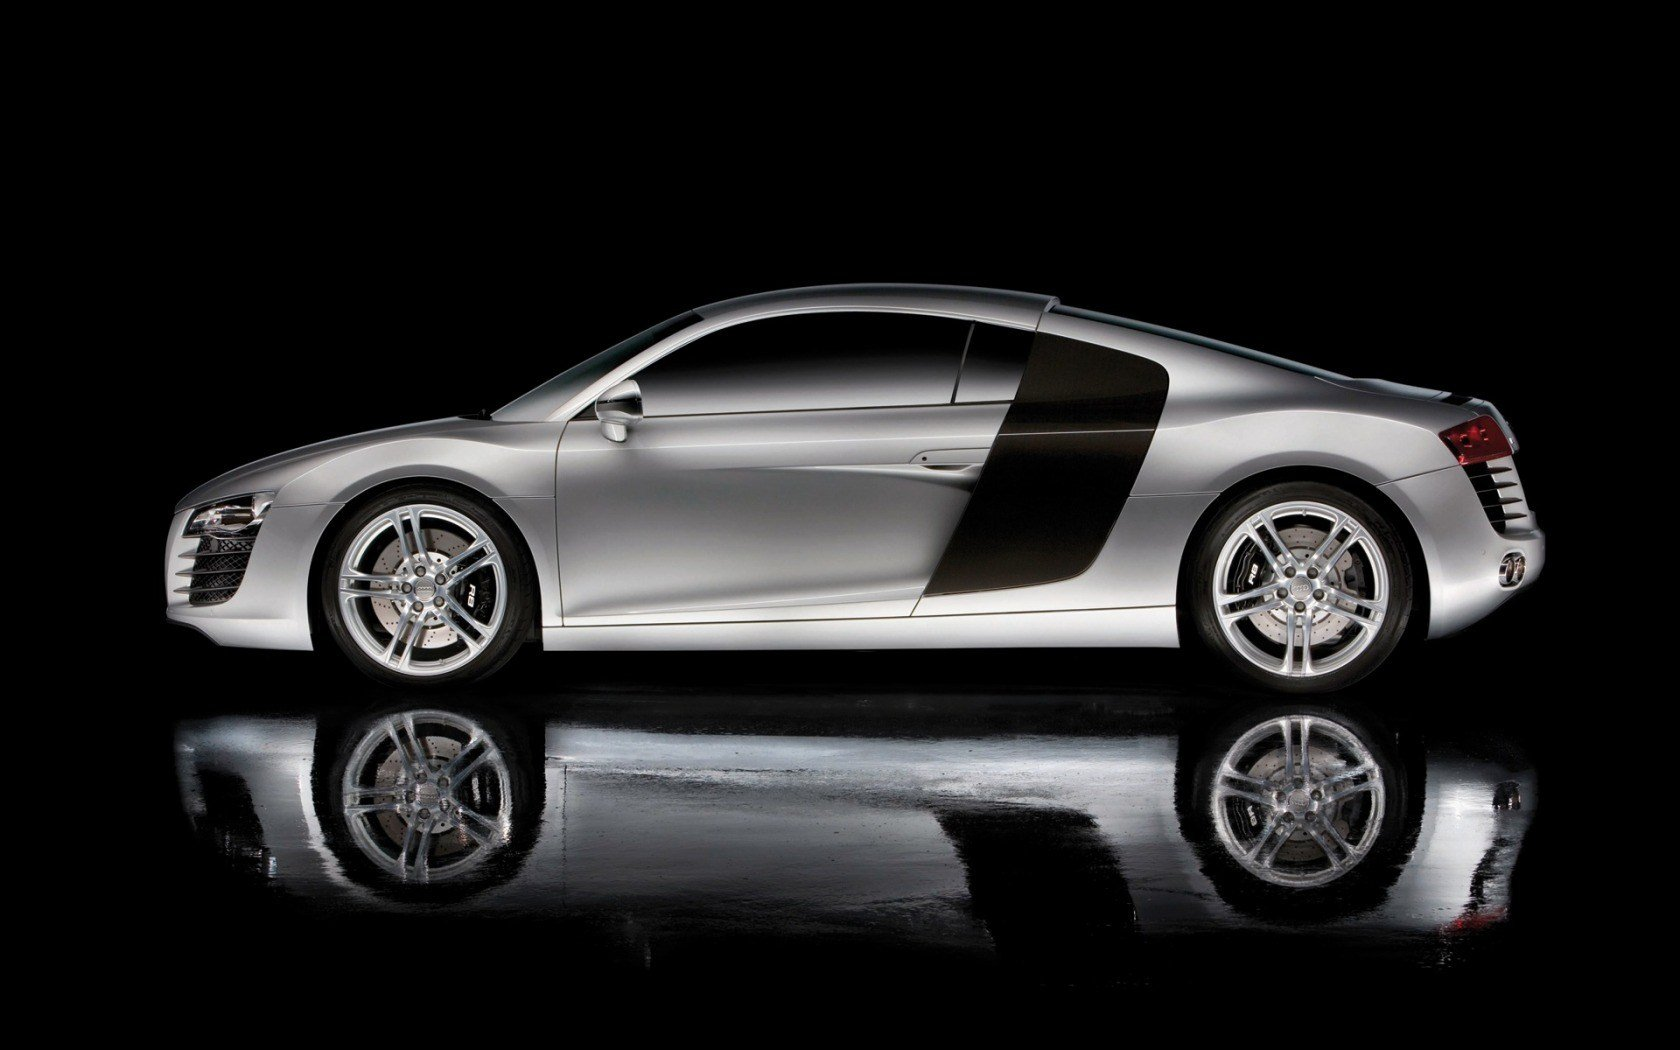 Latest Audi R8 Wallpaper Audi Cars Wallpapers In Jpg Format For Free Download